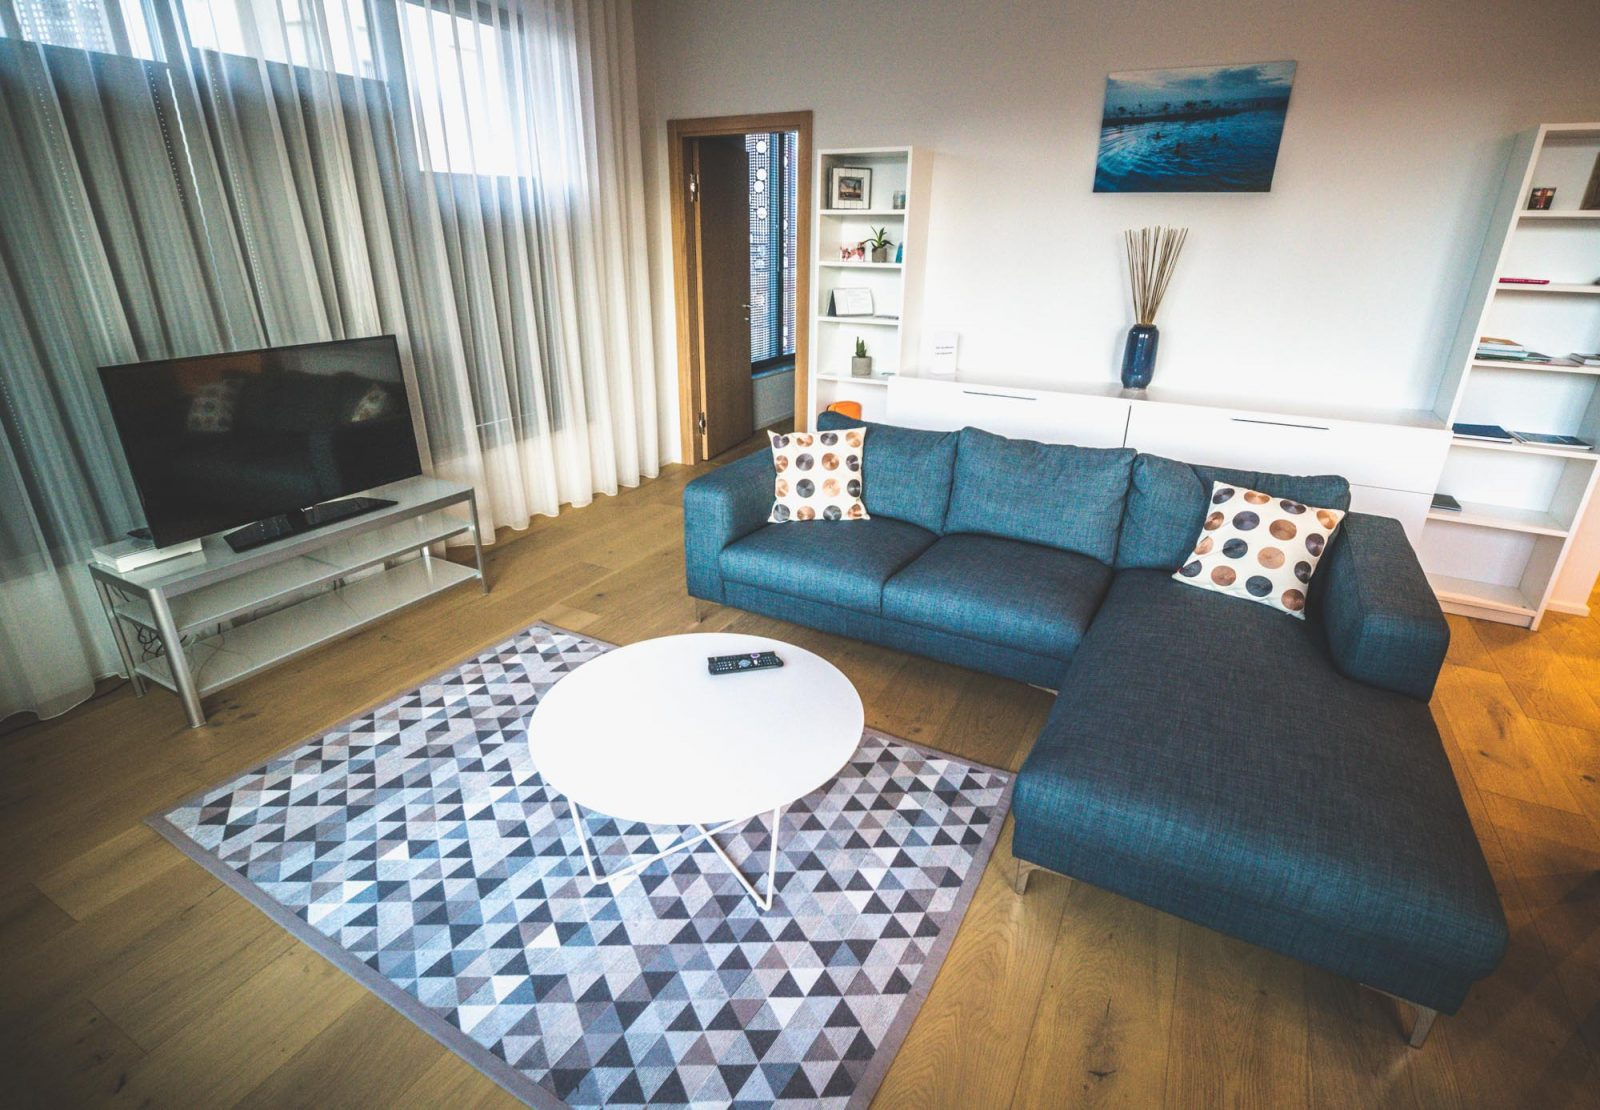 Things to do in Tallinn: The Storyteller's Next - Our uber-modern apartment in Tallinn